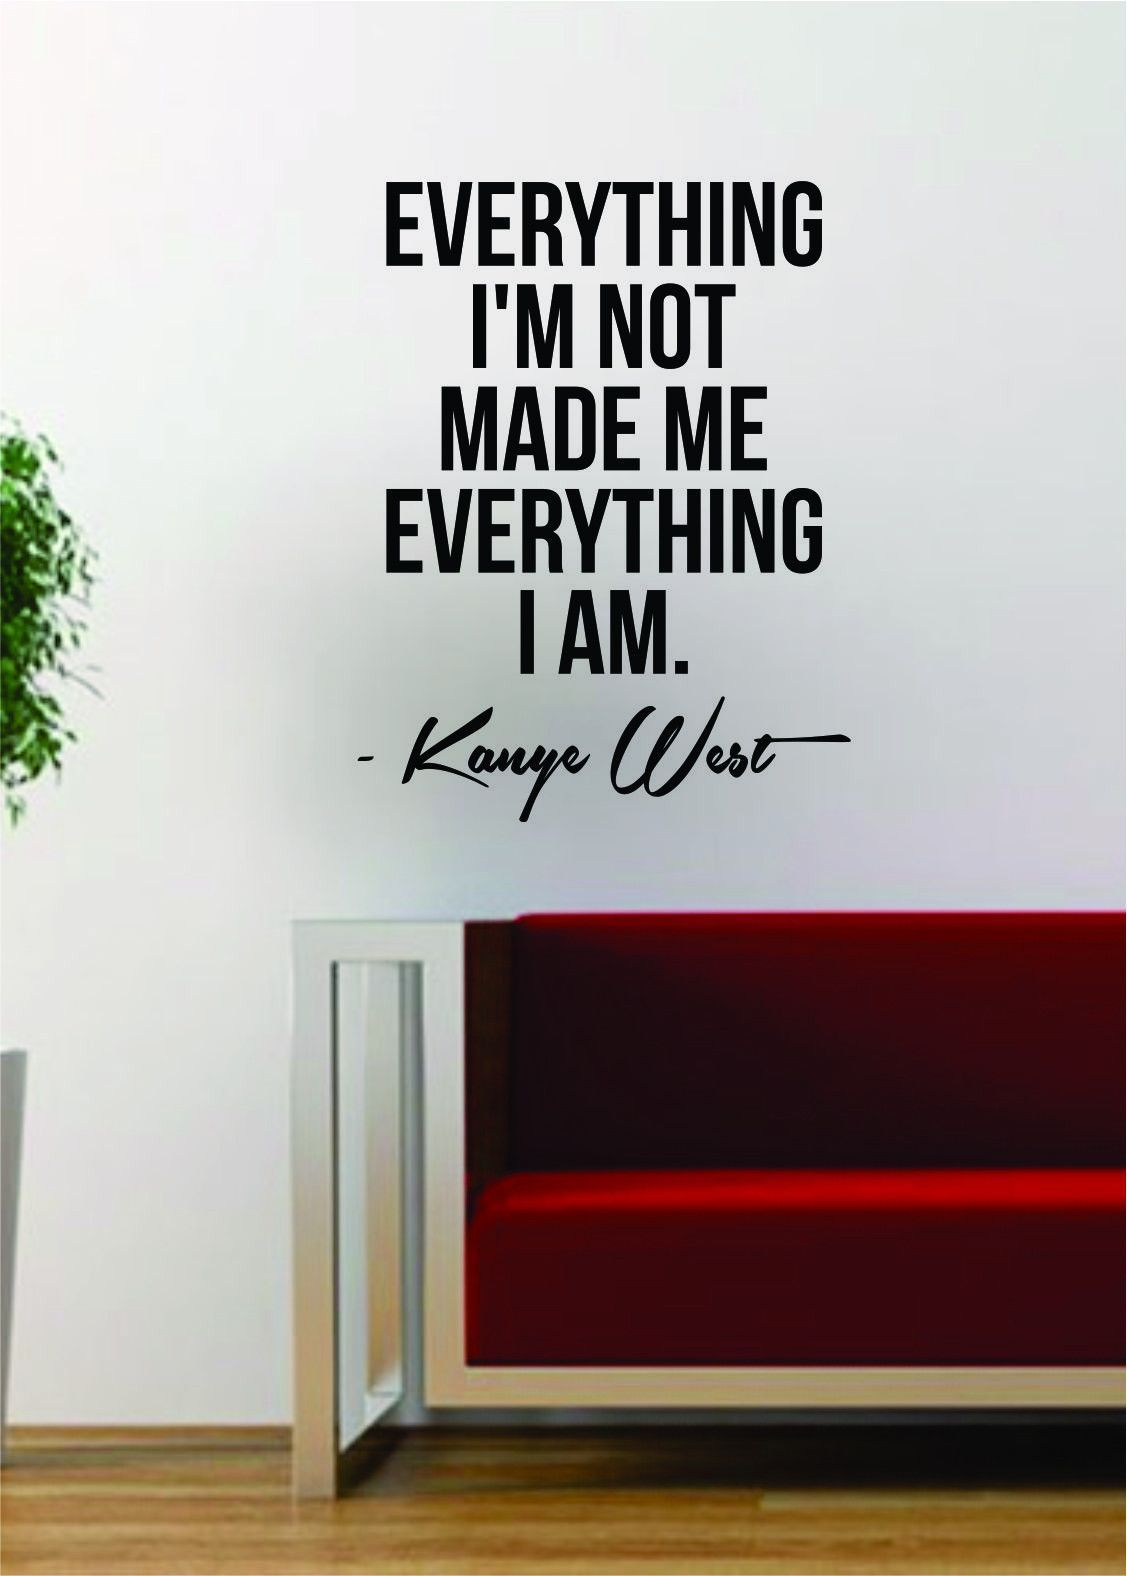 Wall Vinyl Art kanye west everything i am quote decal sticker wall vinyl art